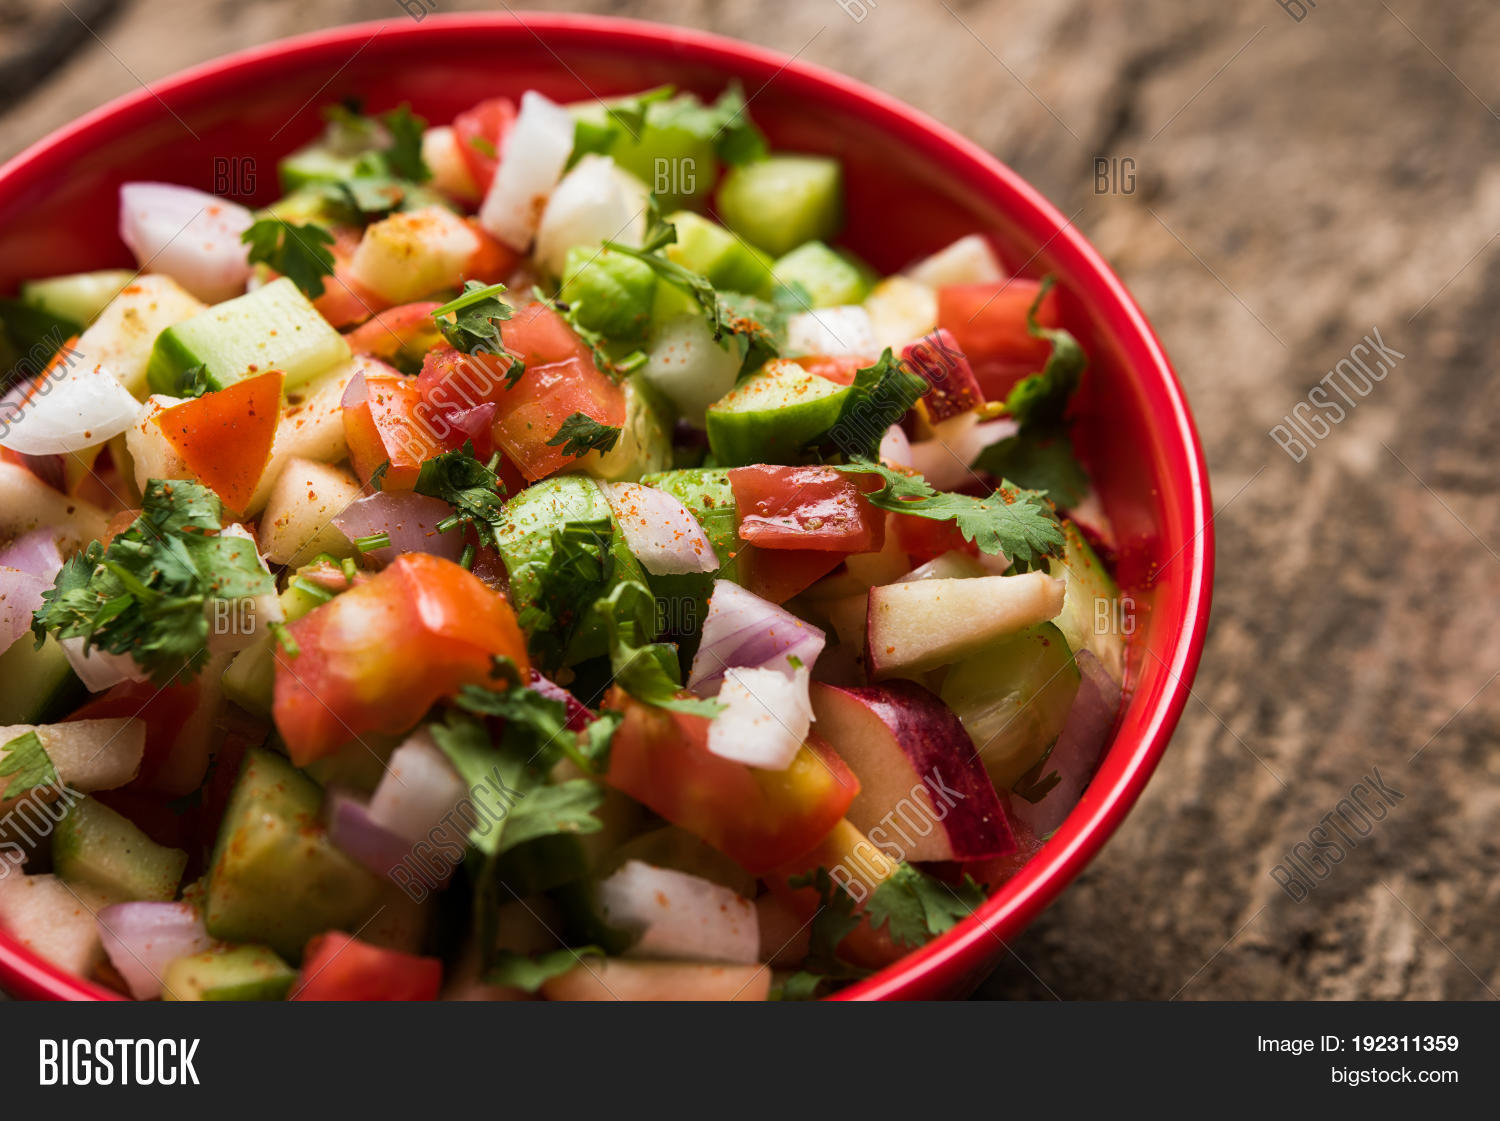 Indian Green Salad Image Photo Free Trial Bigstock